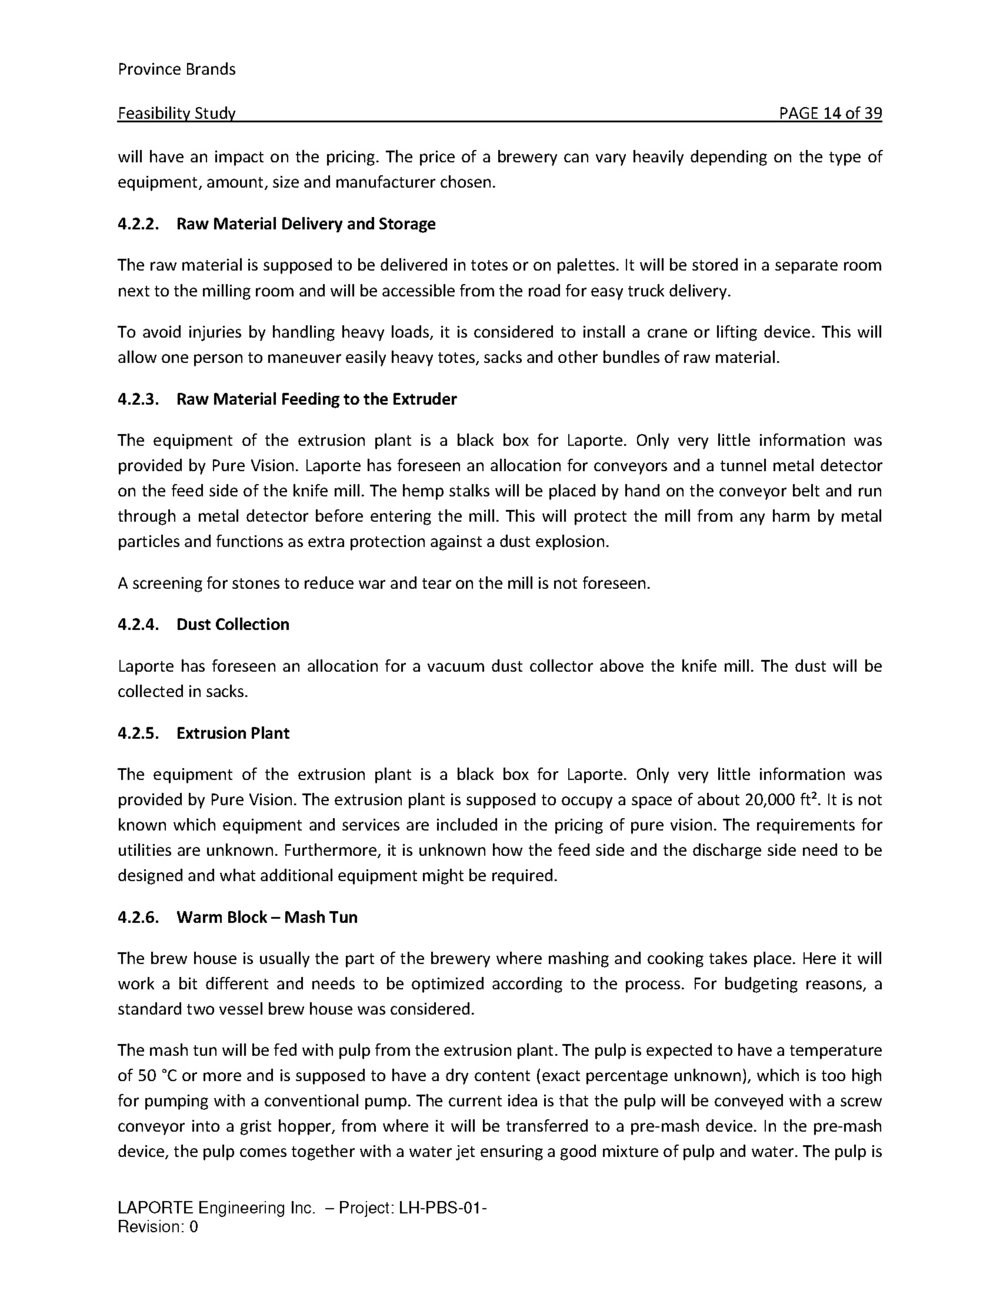 LH-PBS-01_Feasibility Study Report_01_Page_14.jpg